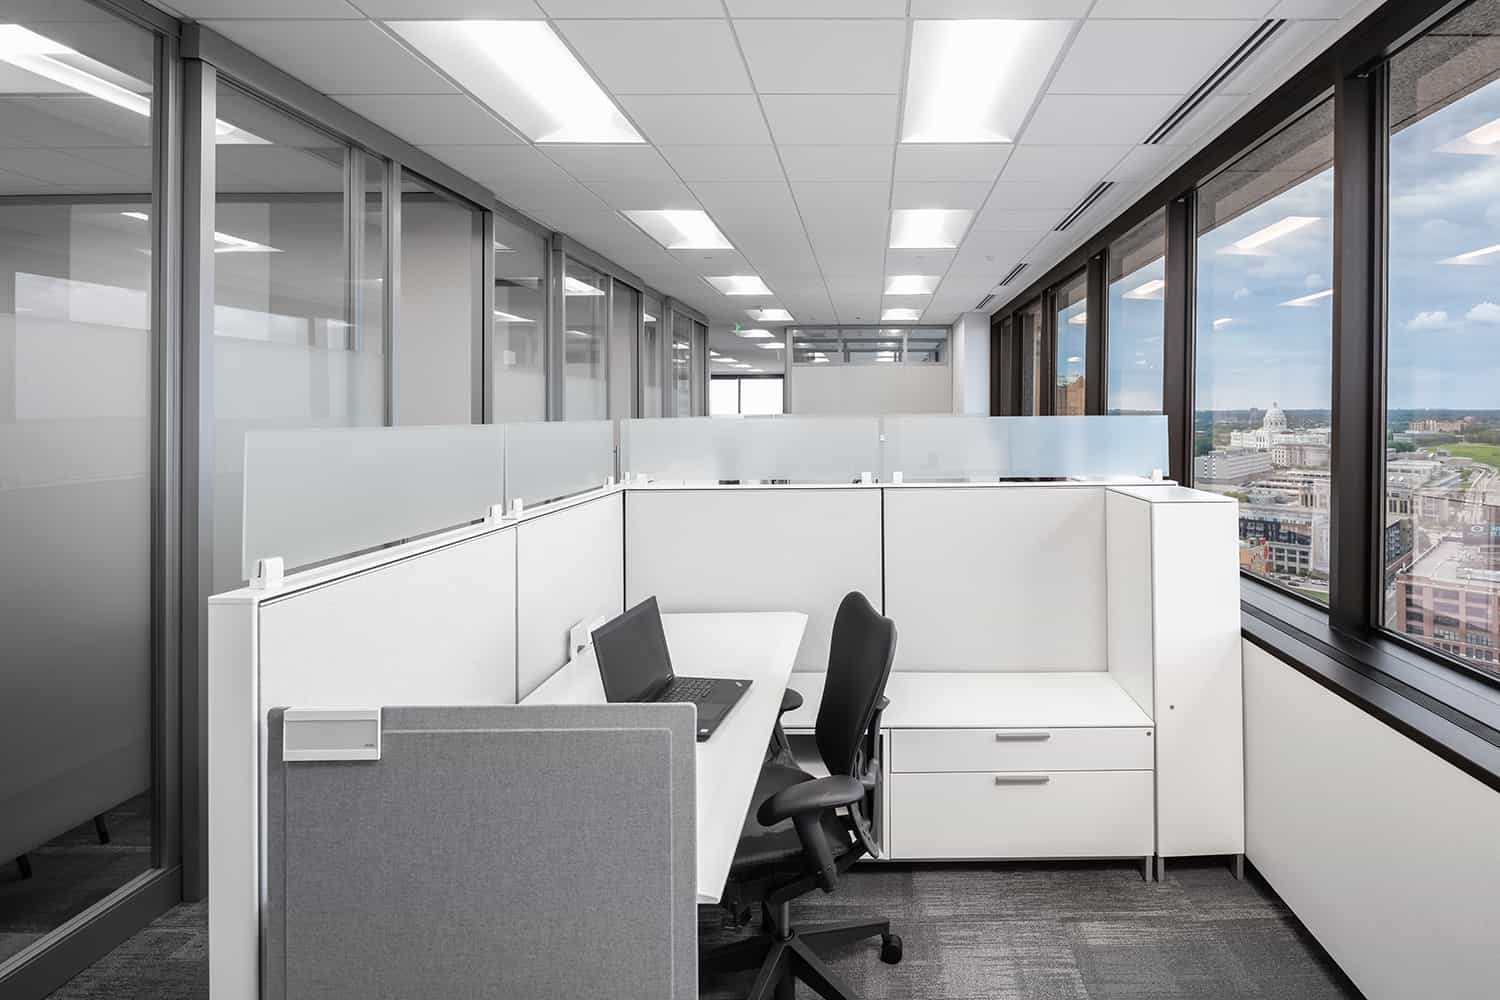 An office cubicle with flexible desk settings and access to daylight.